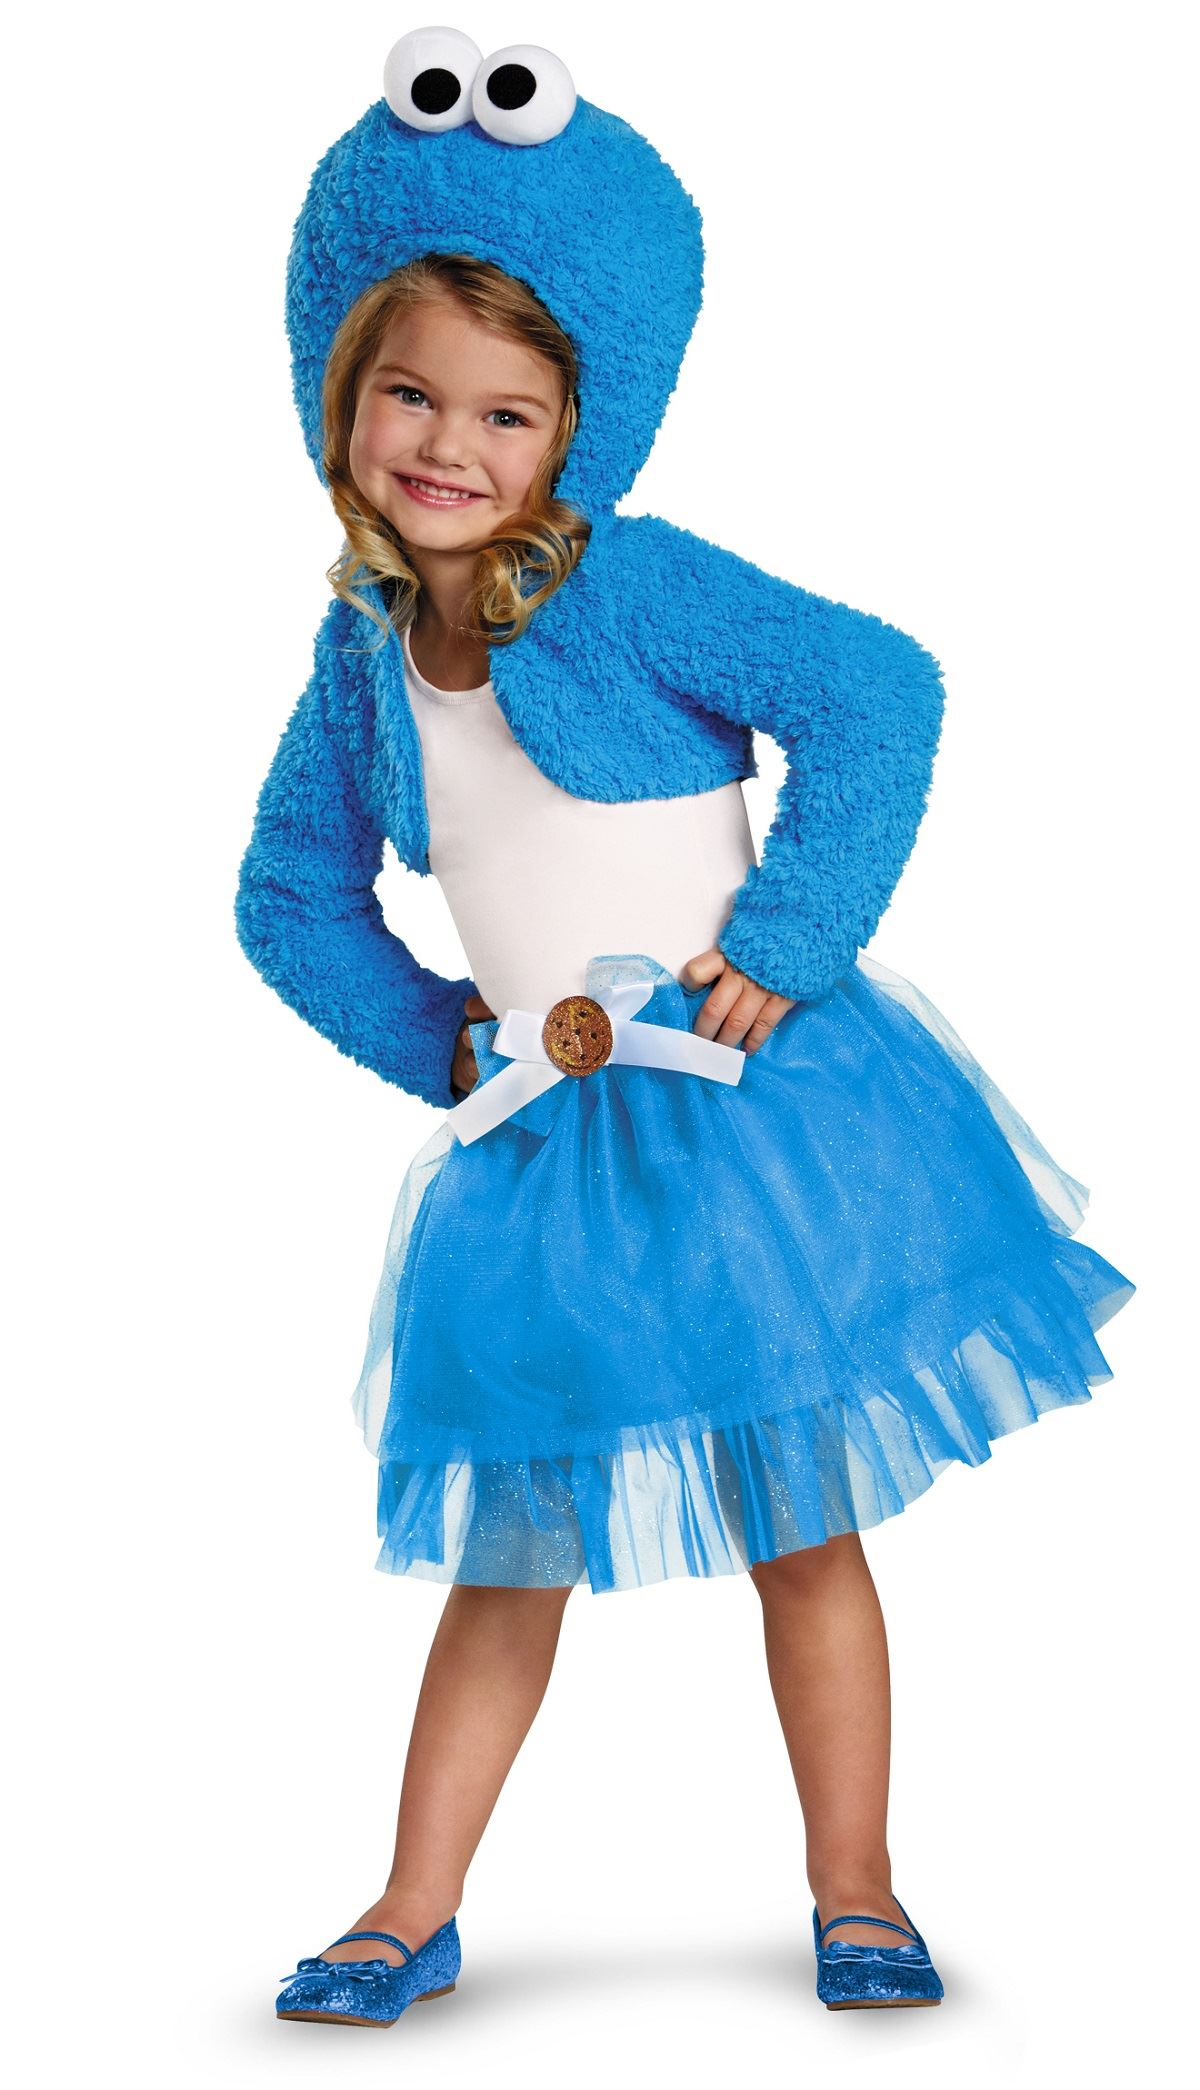 baf754f1afa3 ... Kids Cookie Monster Girls Costume. Click here to view Large Image